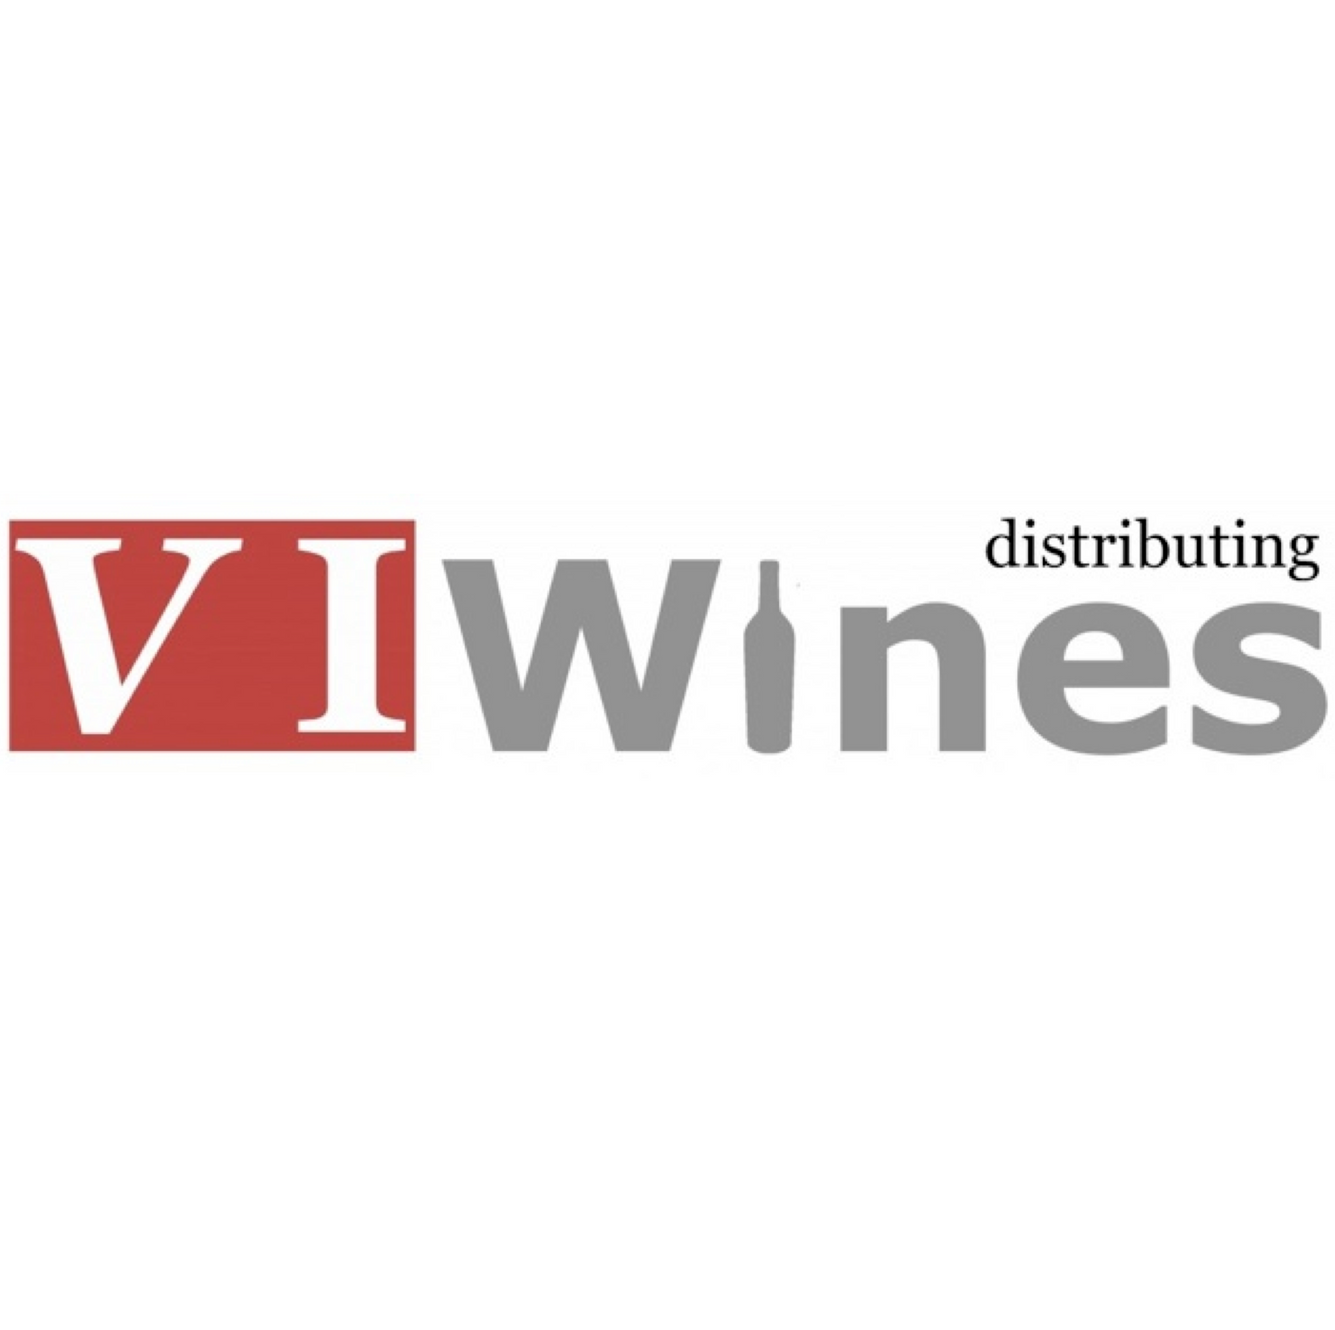 V I Wines Distributing :: About Us